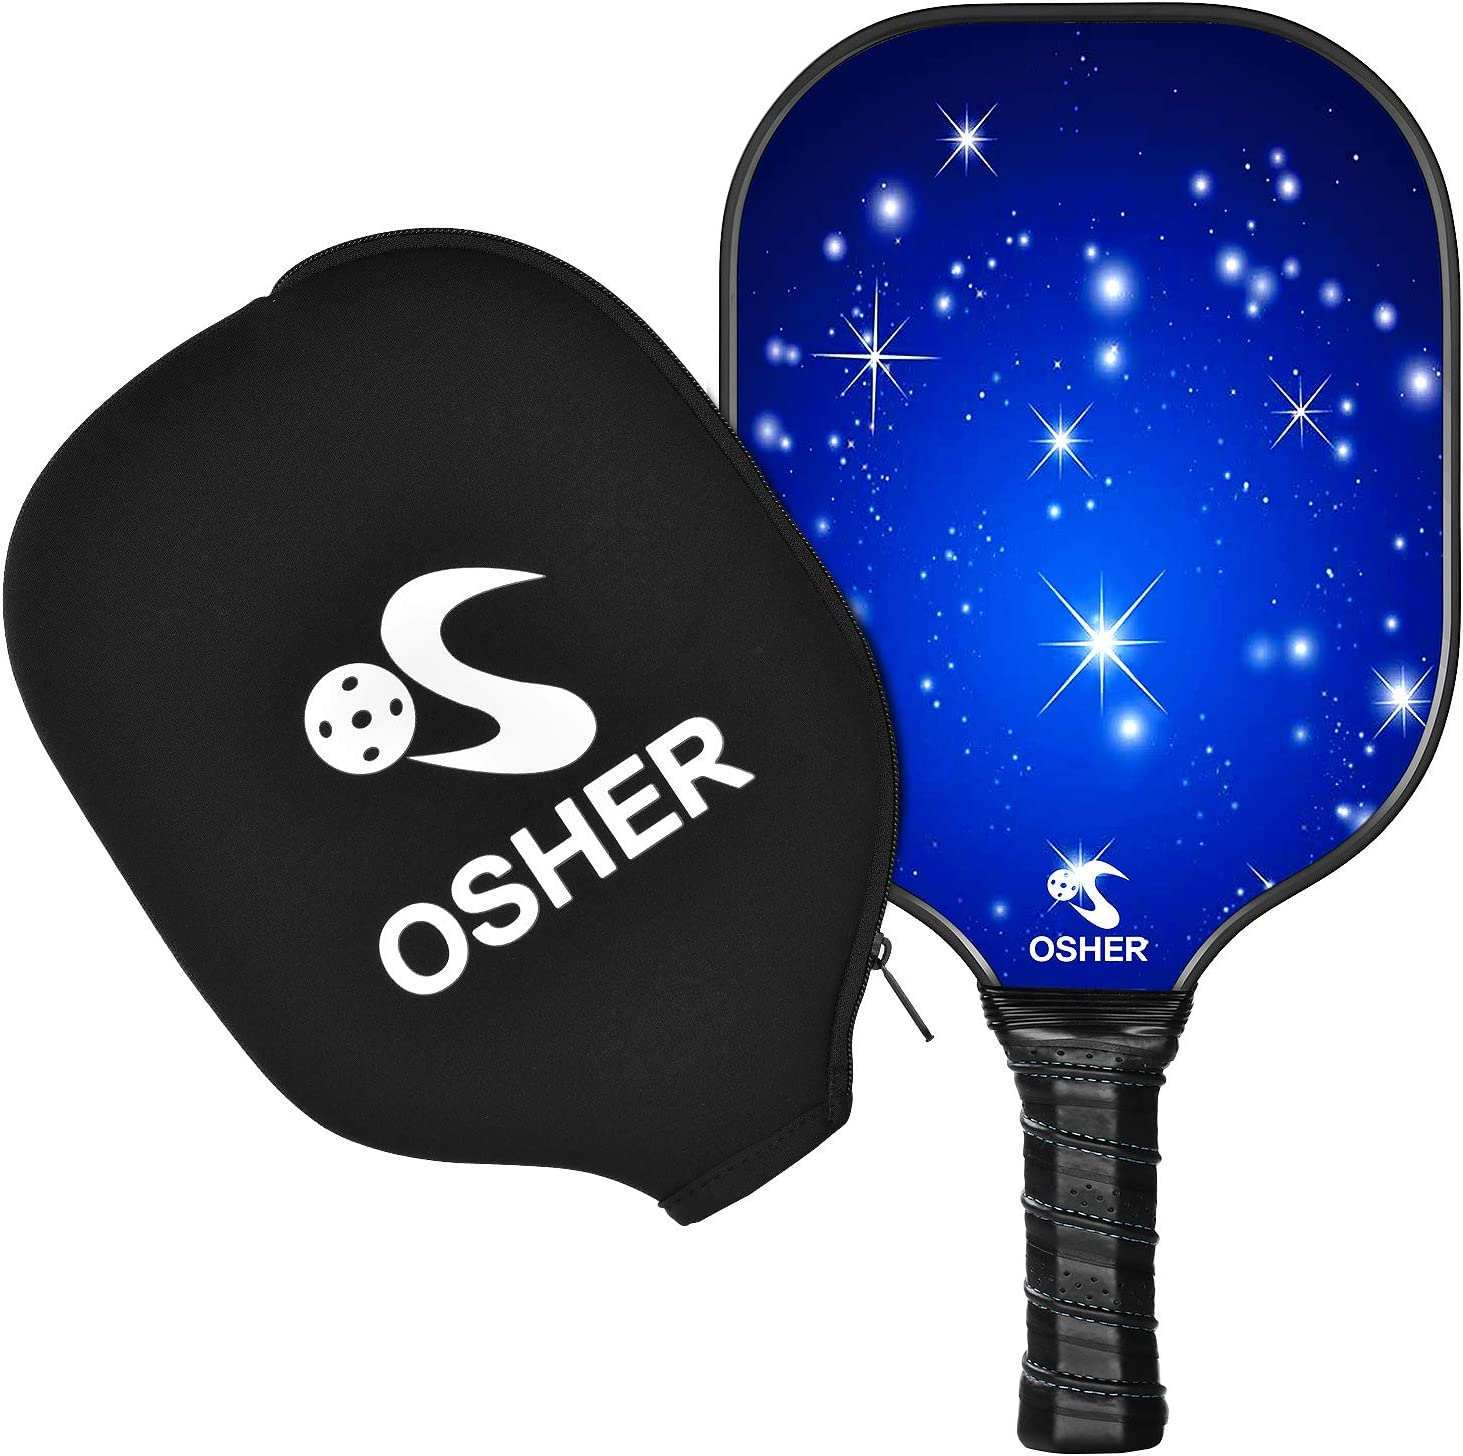 OSHER Graphite Pickleball Racket Honeycomb Composite Core Pickleball Paddle Set Ultra Cushion Grip Low Profile Edge Bundle Graphite Pickleball Paddles ...